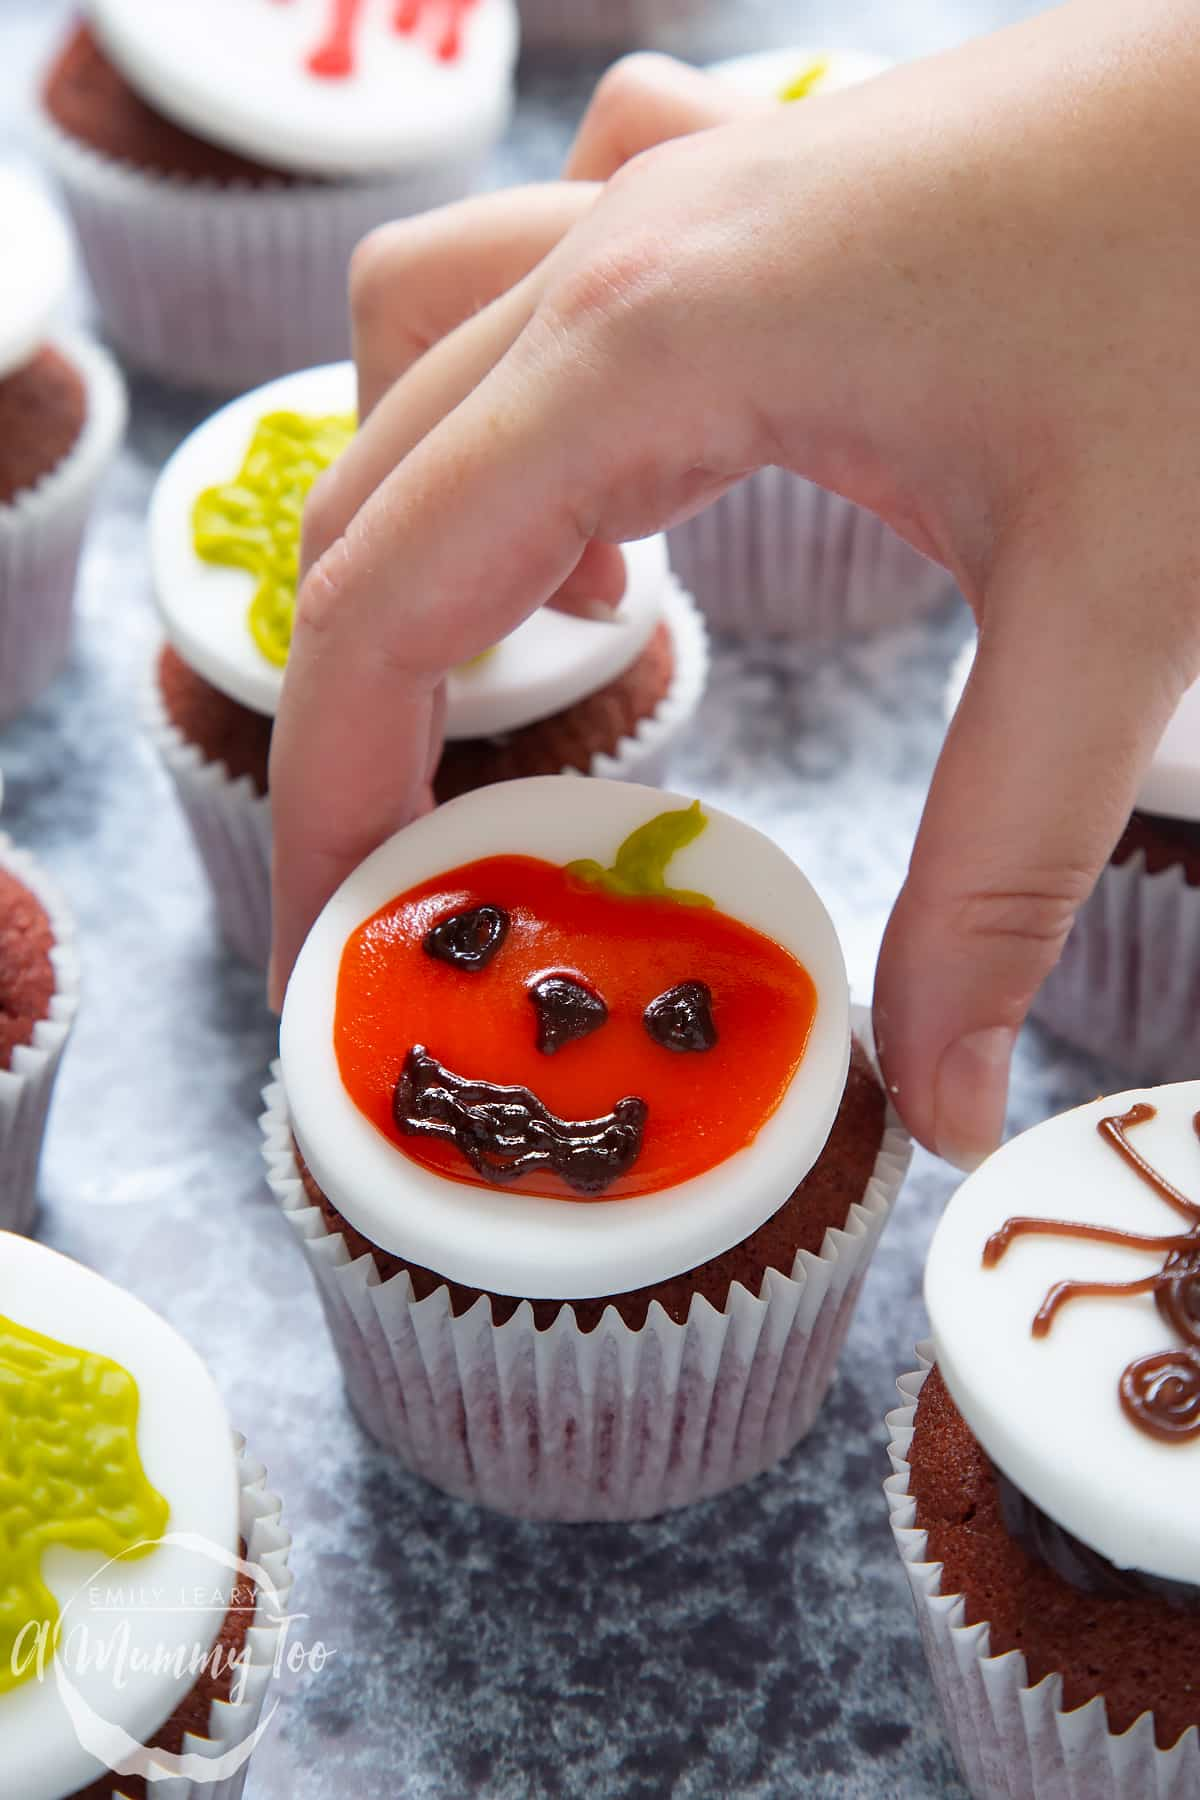 Dairy free Halloween cupcakes: red velvet cupcakes topped with chocolate frosting and white fondant discs decorated with icing pens. The cupcake in the foreground has a jack o'lantern design. A hand reaches to take it.